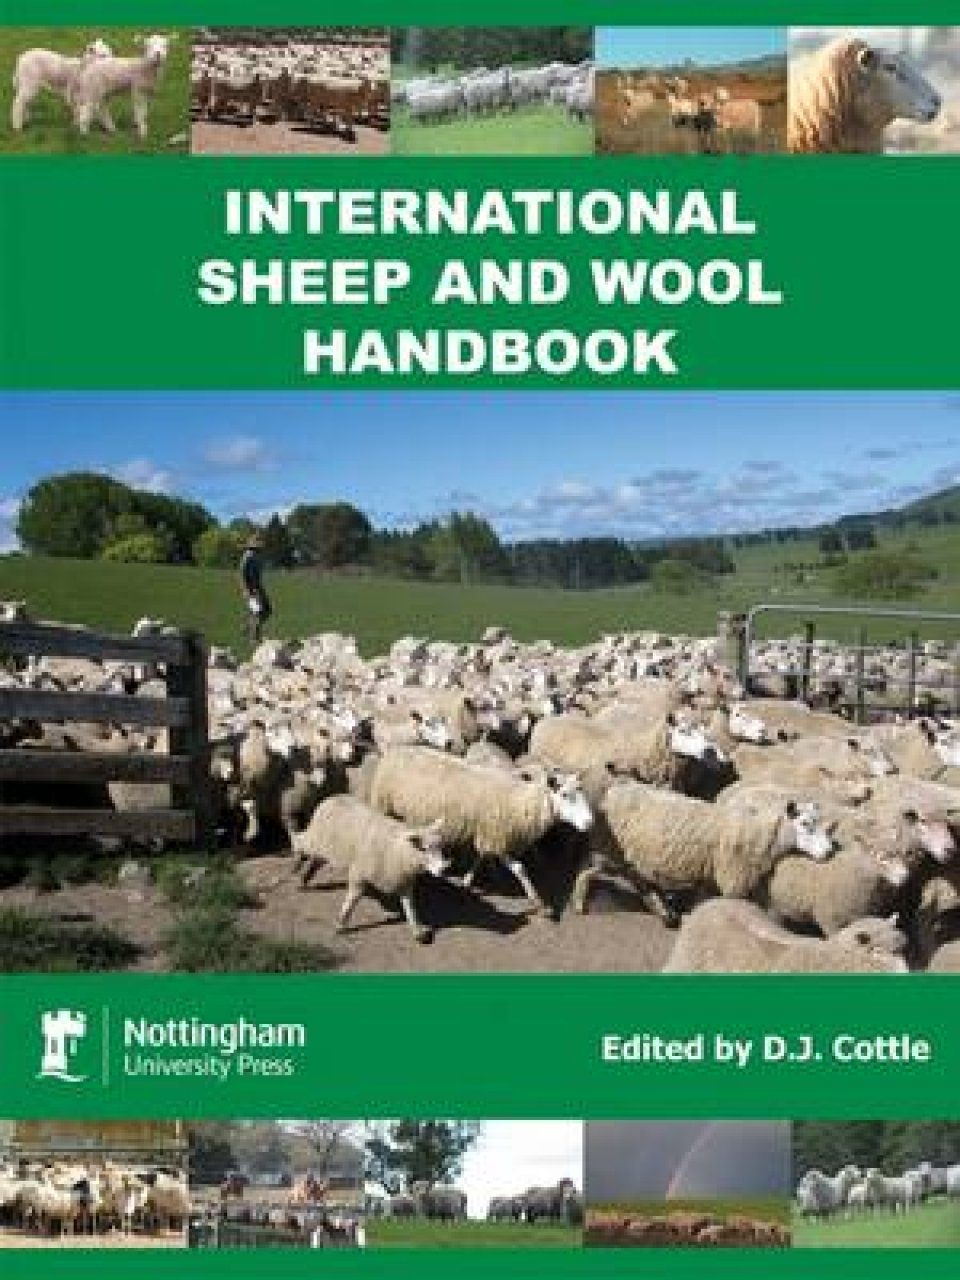 International Sheep and Wool Handbook